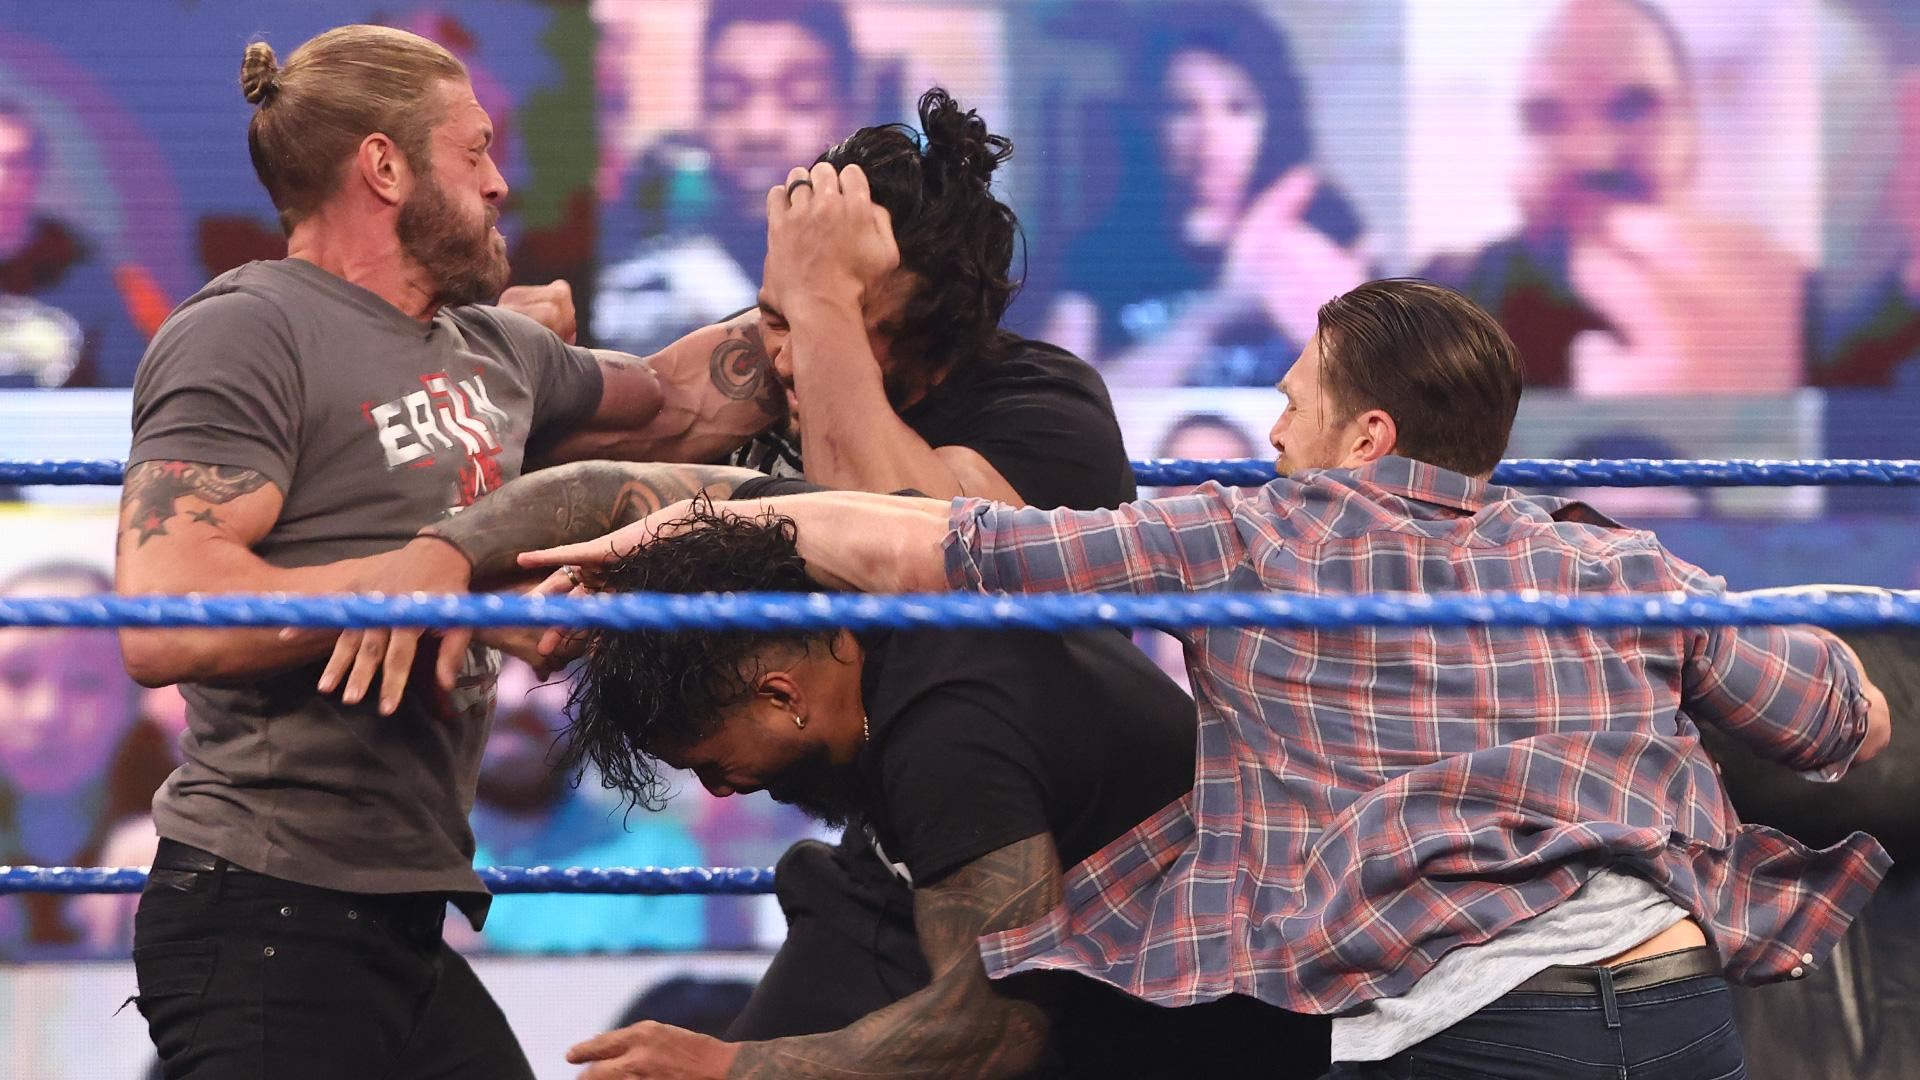 SmackDown: What's the furthest place from here?